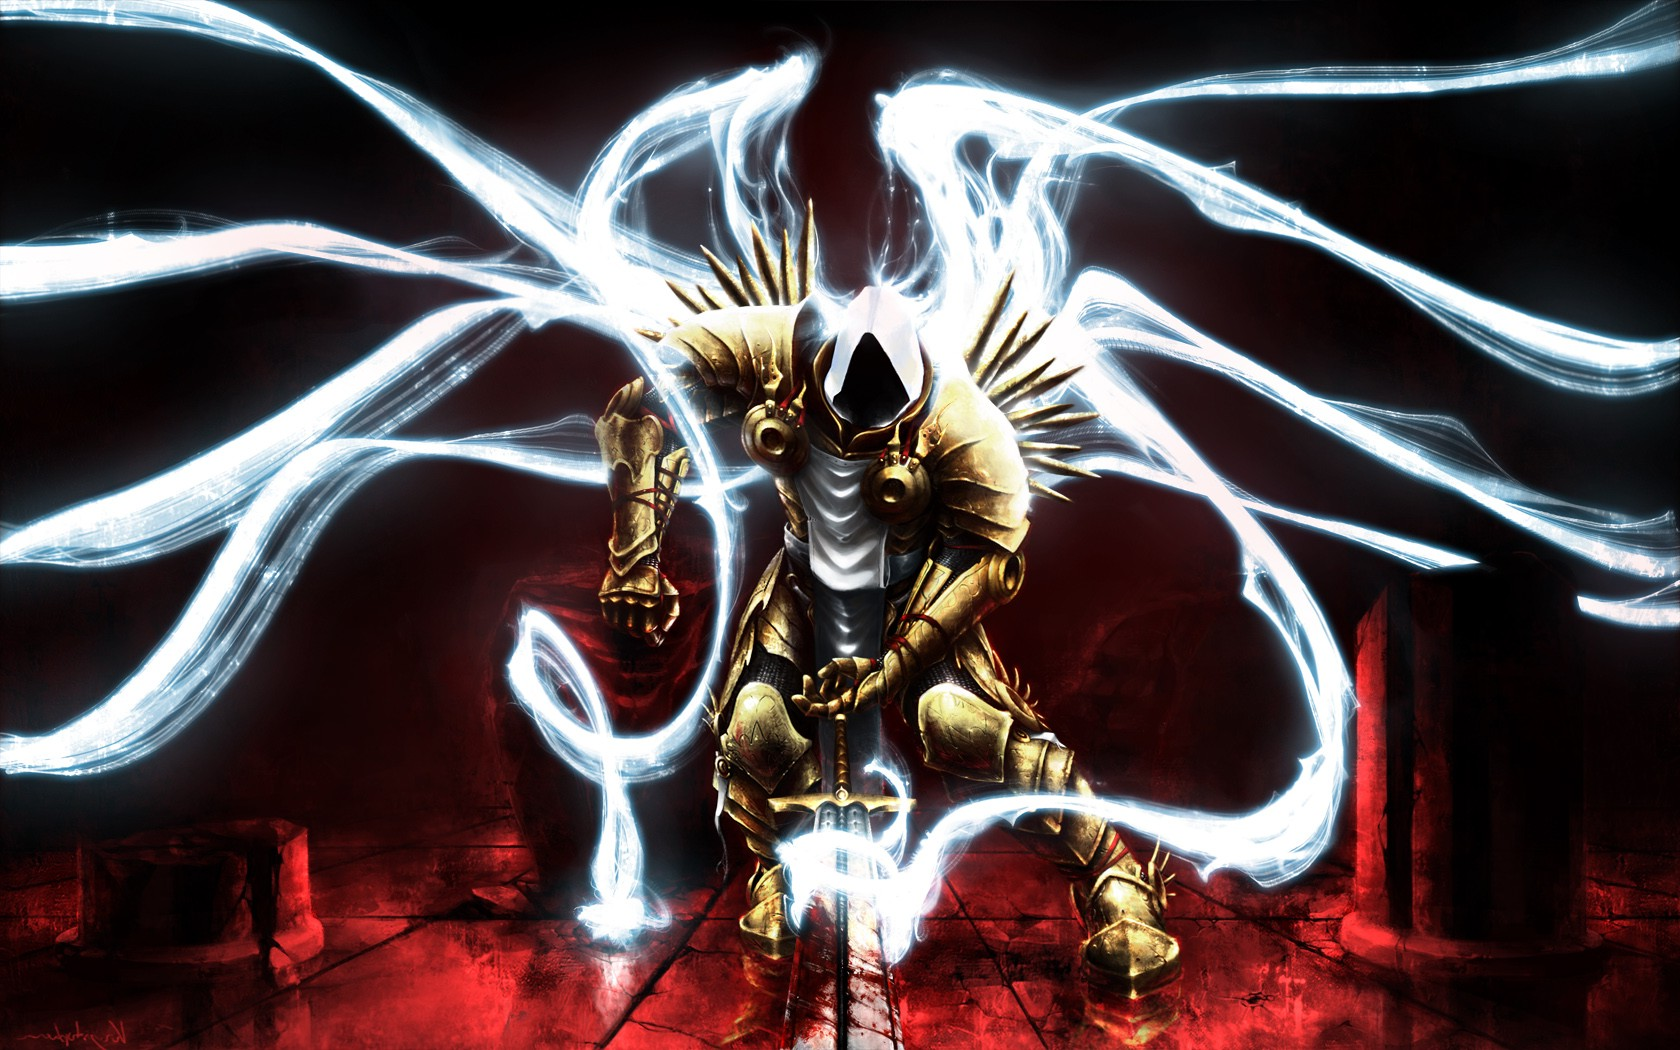 Diablo Hd Wallpaper Sword Video Games Angel Diablo Blood Wallpapers Hd